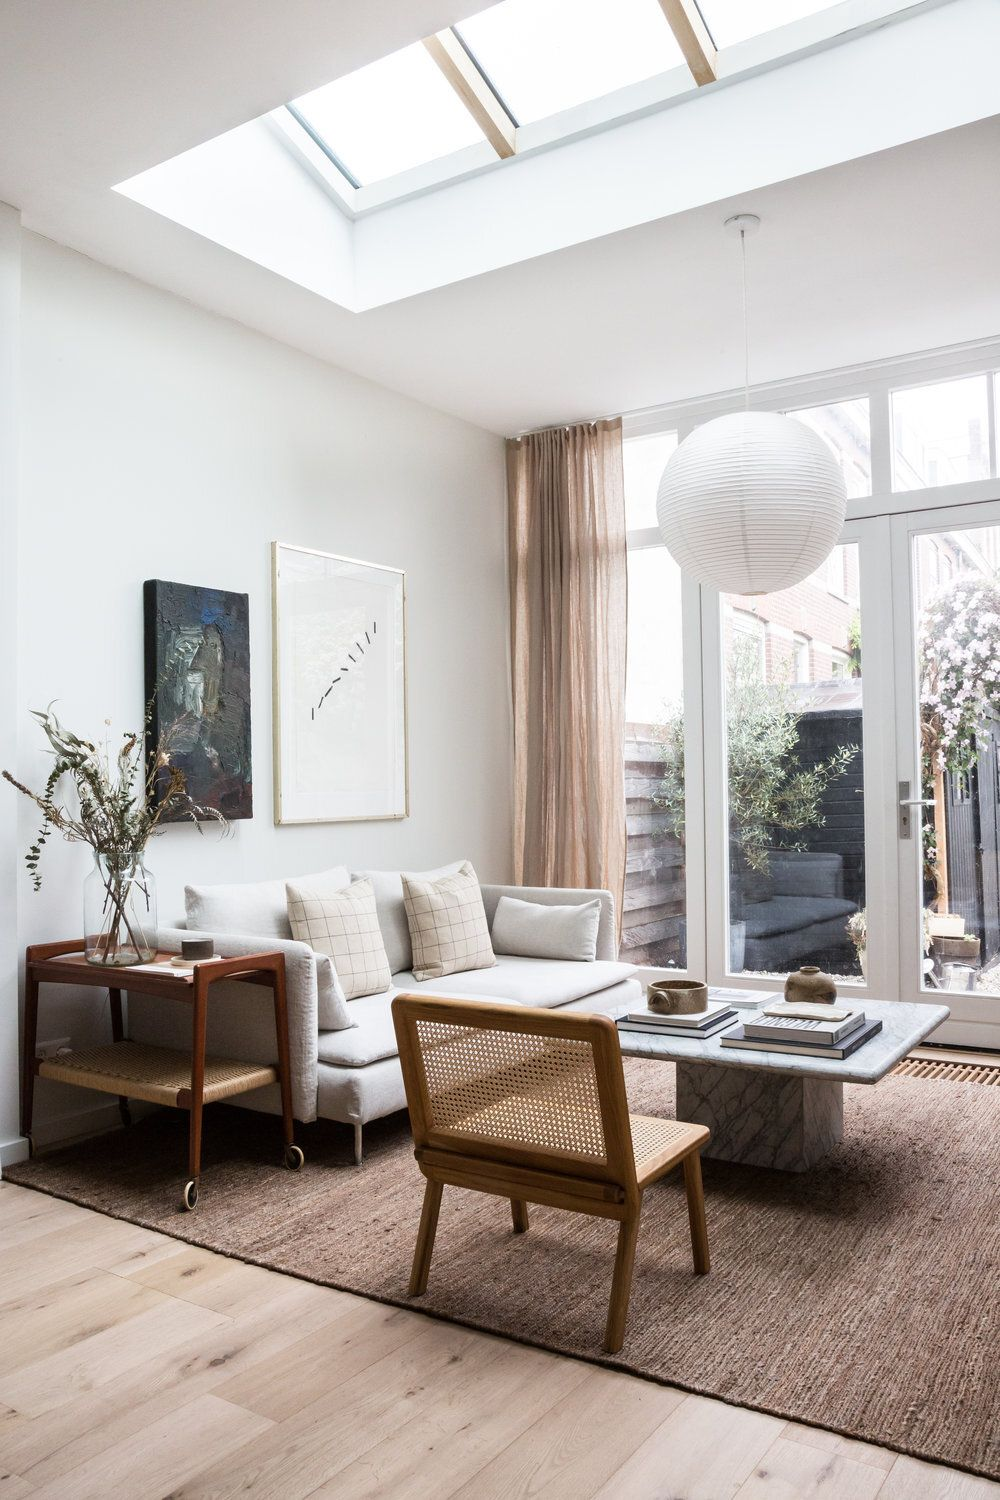 Holly Marder's Light-Filled Serene Home in The Netherlands — THE NORDROOM